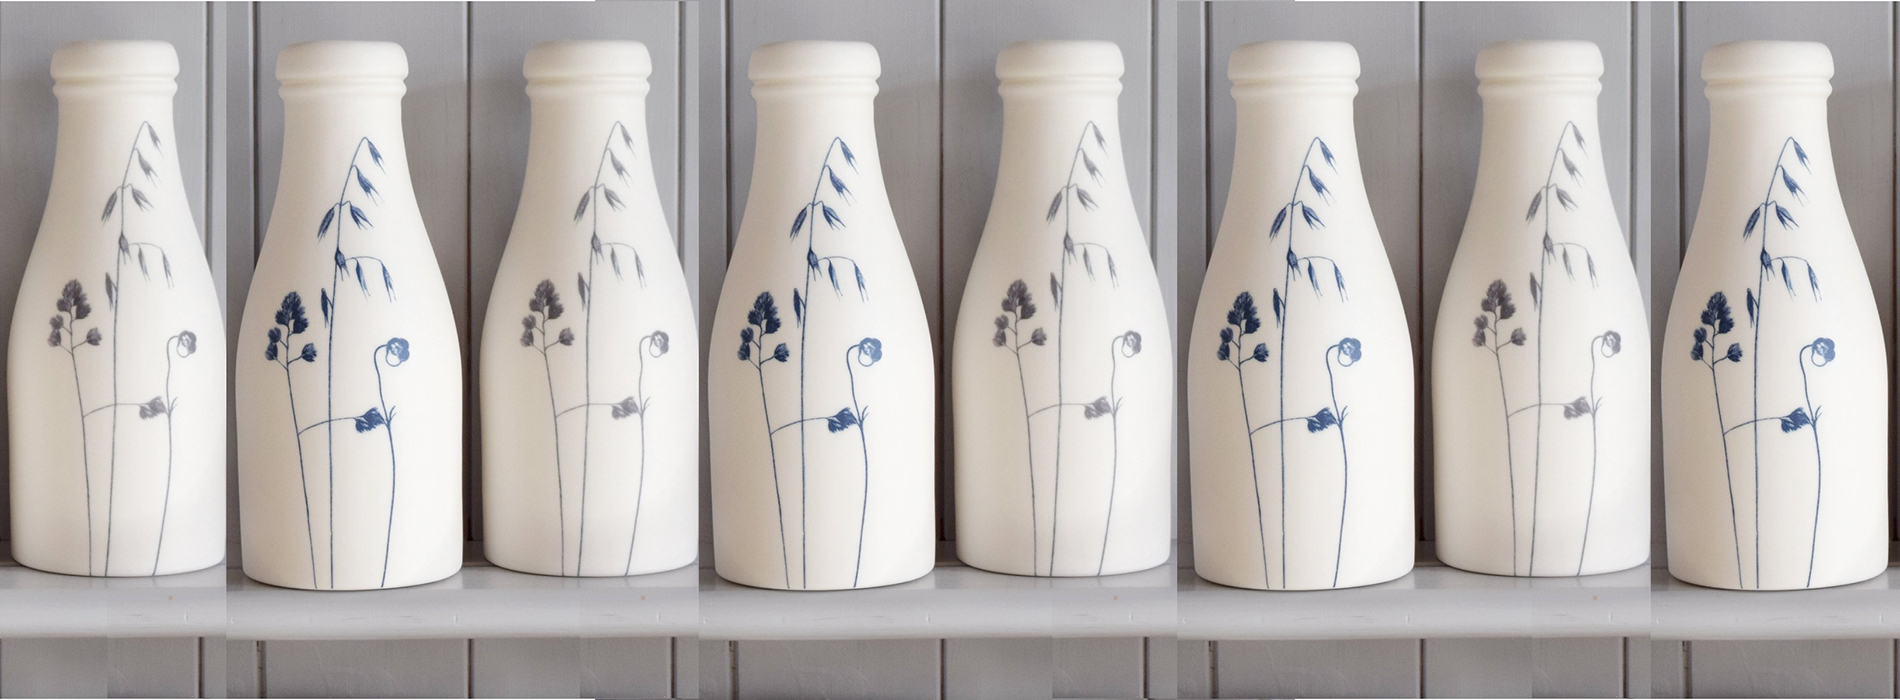 Porcelain grass-design milk bottles from Happy and Glorious